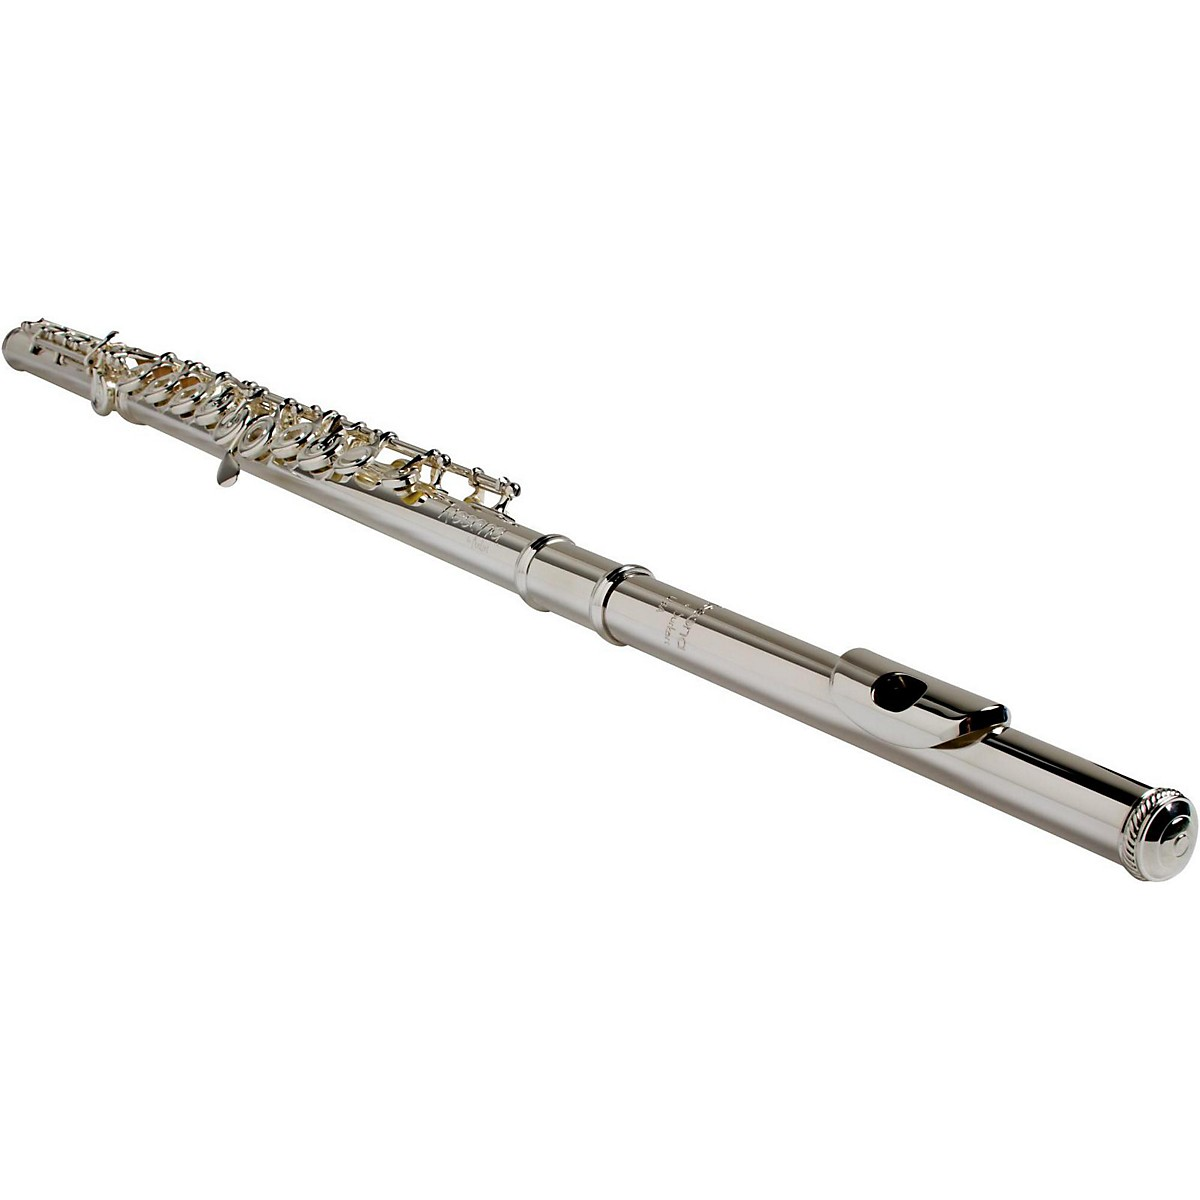 BURKART Resona 300 Flute with Sterling Silver Body and Headjoint with 14K Gold Riser